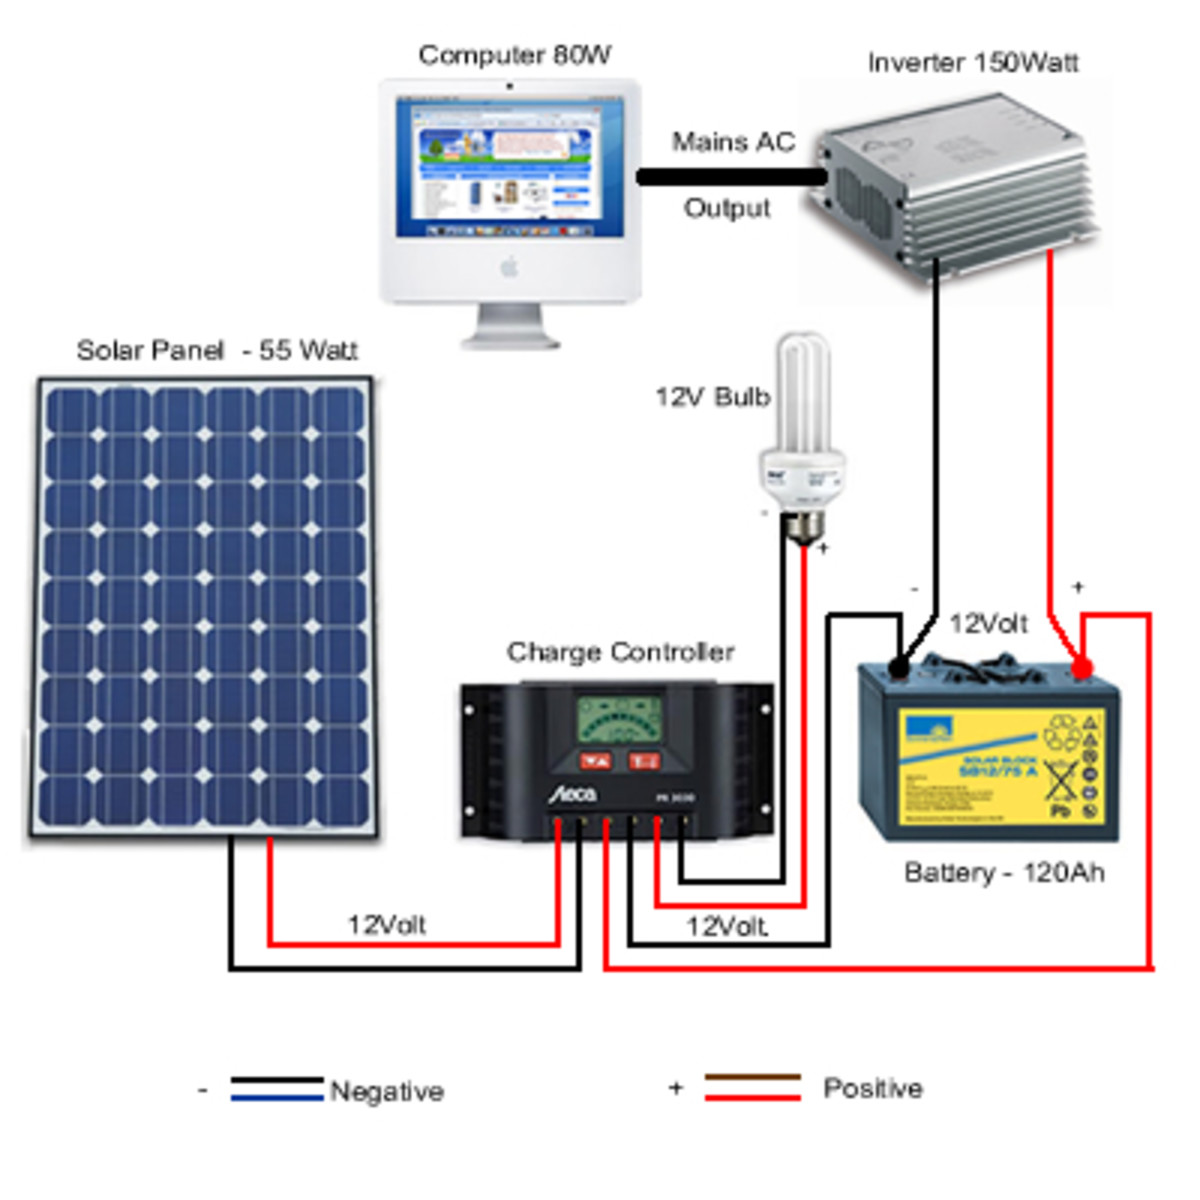 Simple Photovoltaic Solar System Setup For The Remote Home